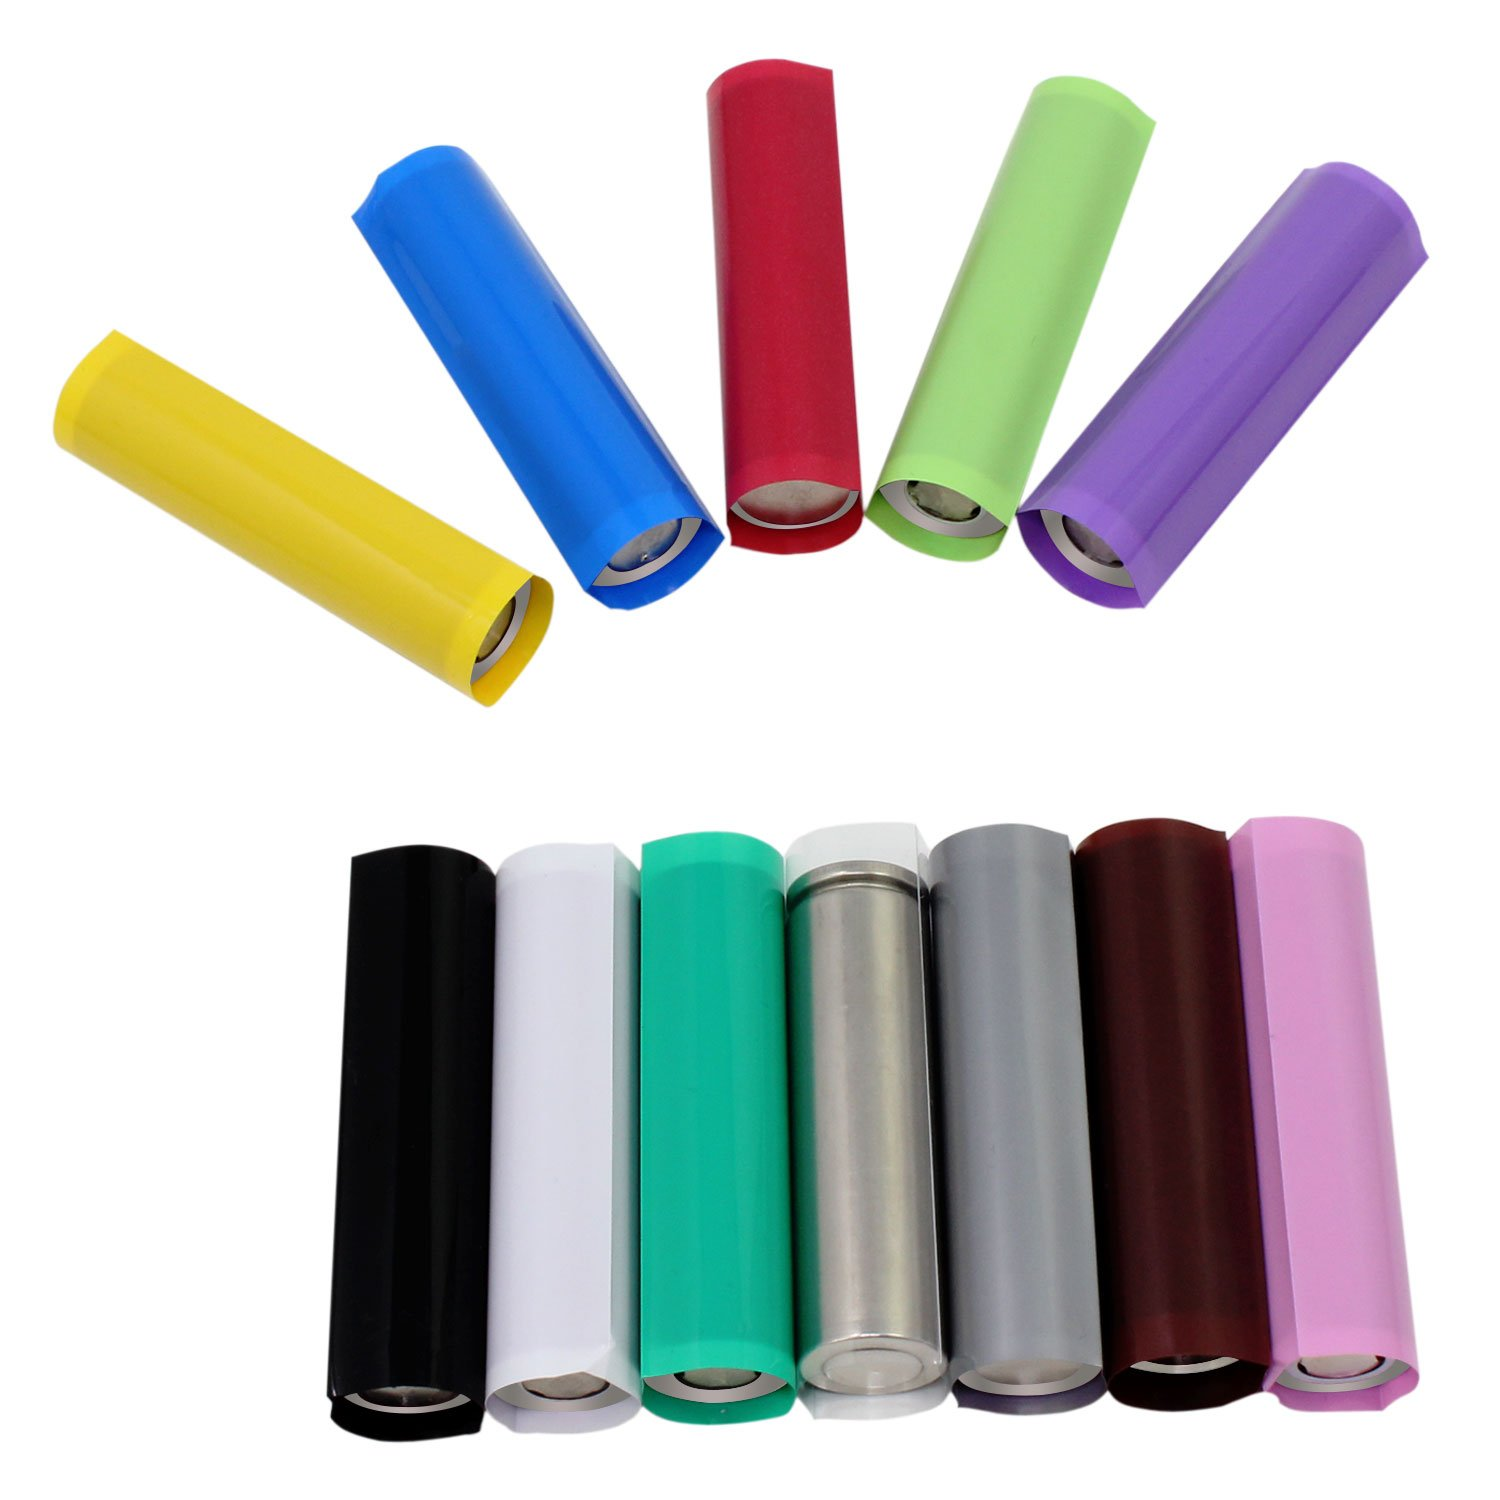 OCR Flat PVC Heat Shrink Tubing Battery Wrap for 1 x 18650 Battery 300PCS(29.5mm12 Colors) by OCR (Image #4)